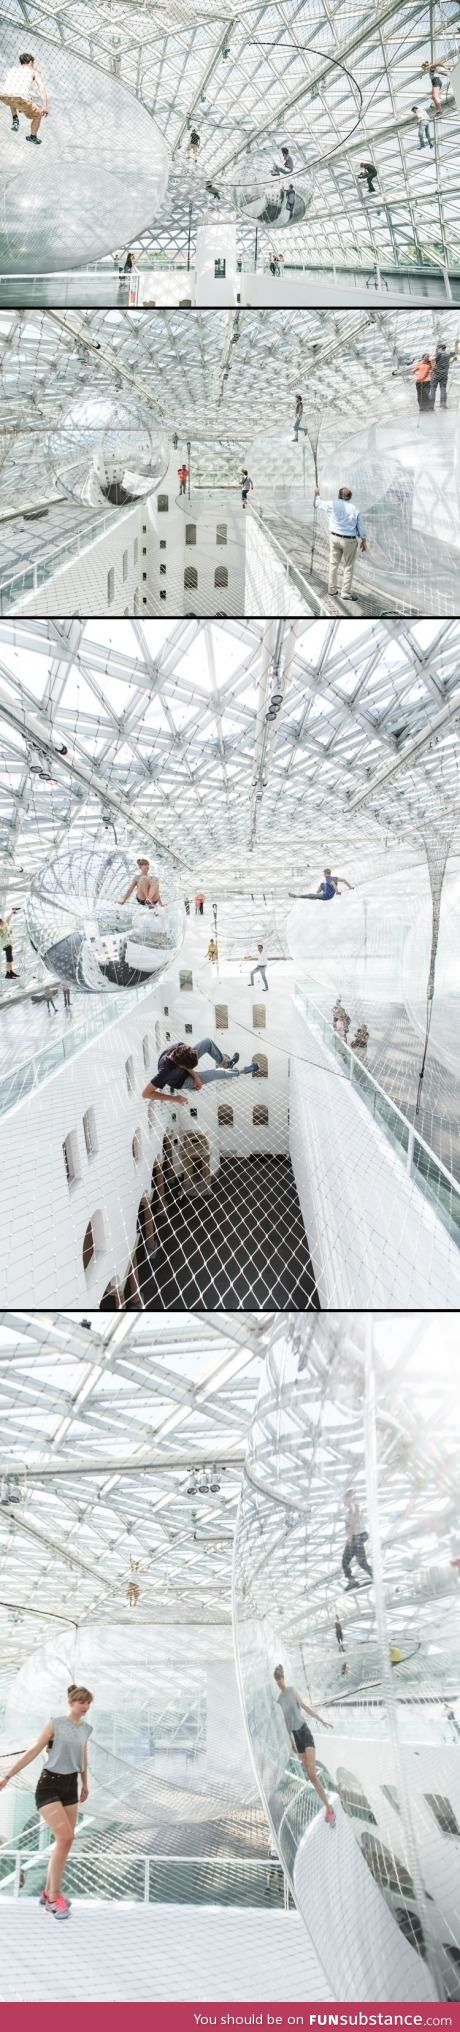 Playground for adults in germany Nets and Big sitting bubbles